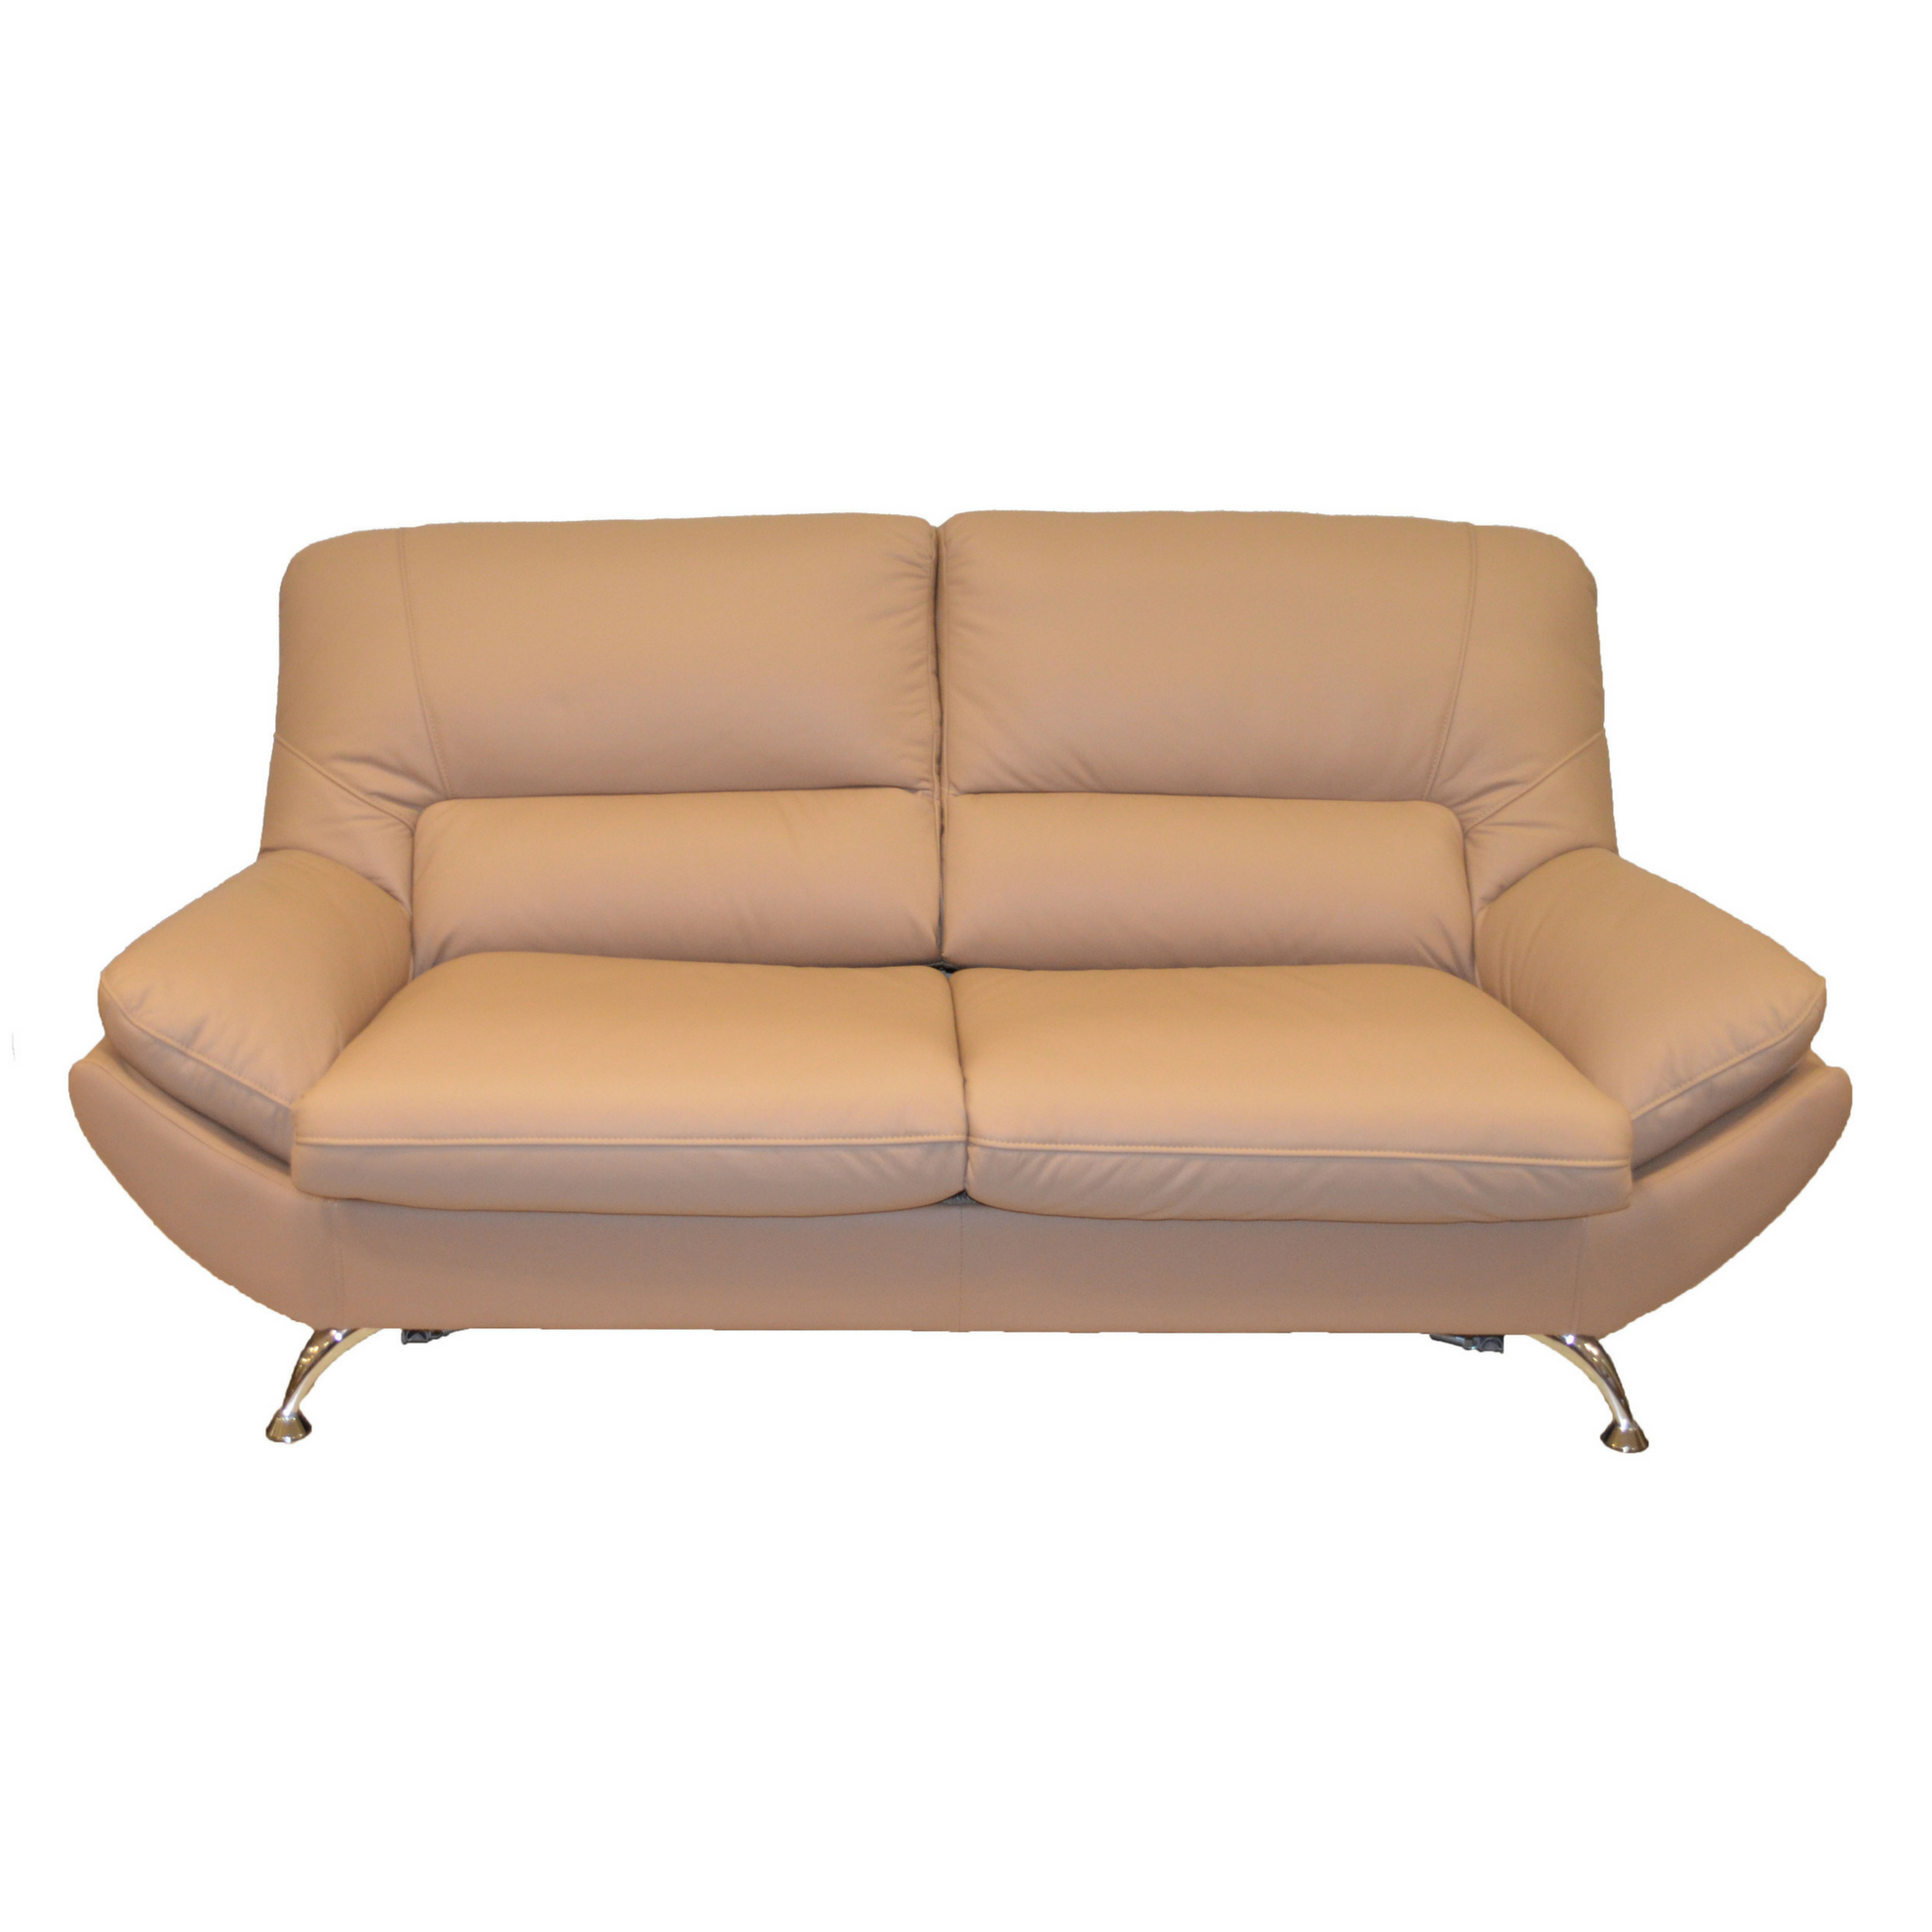 Silica 3 seat Sofa bed 2